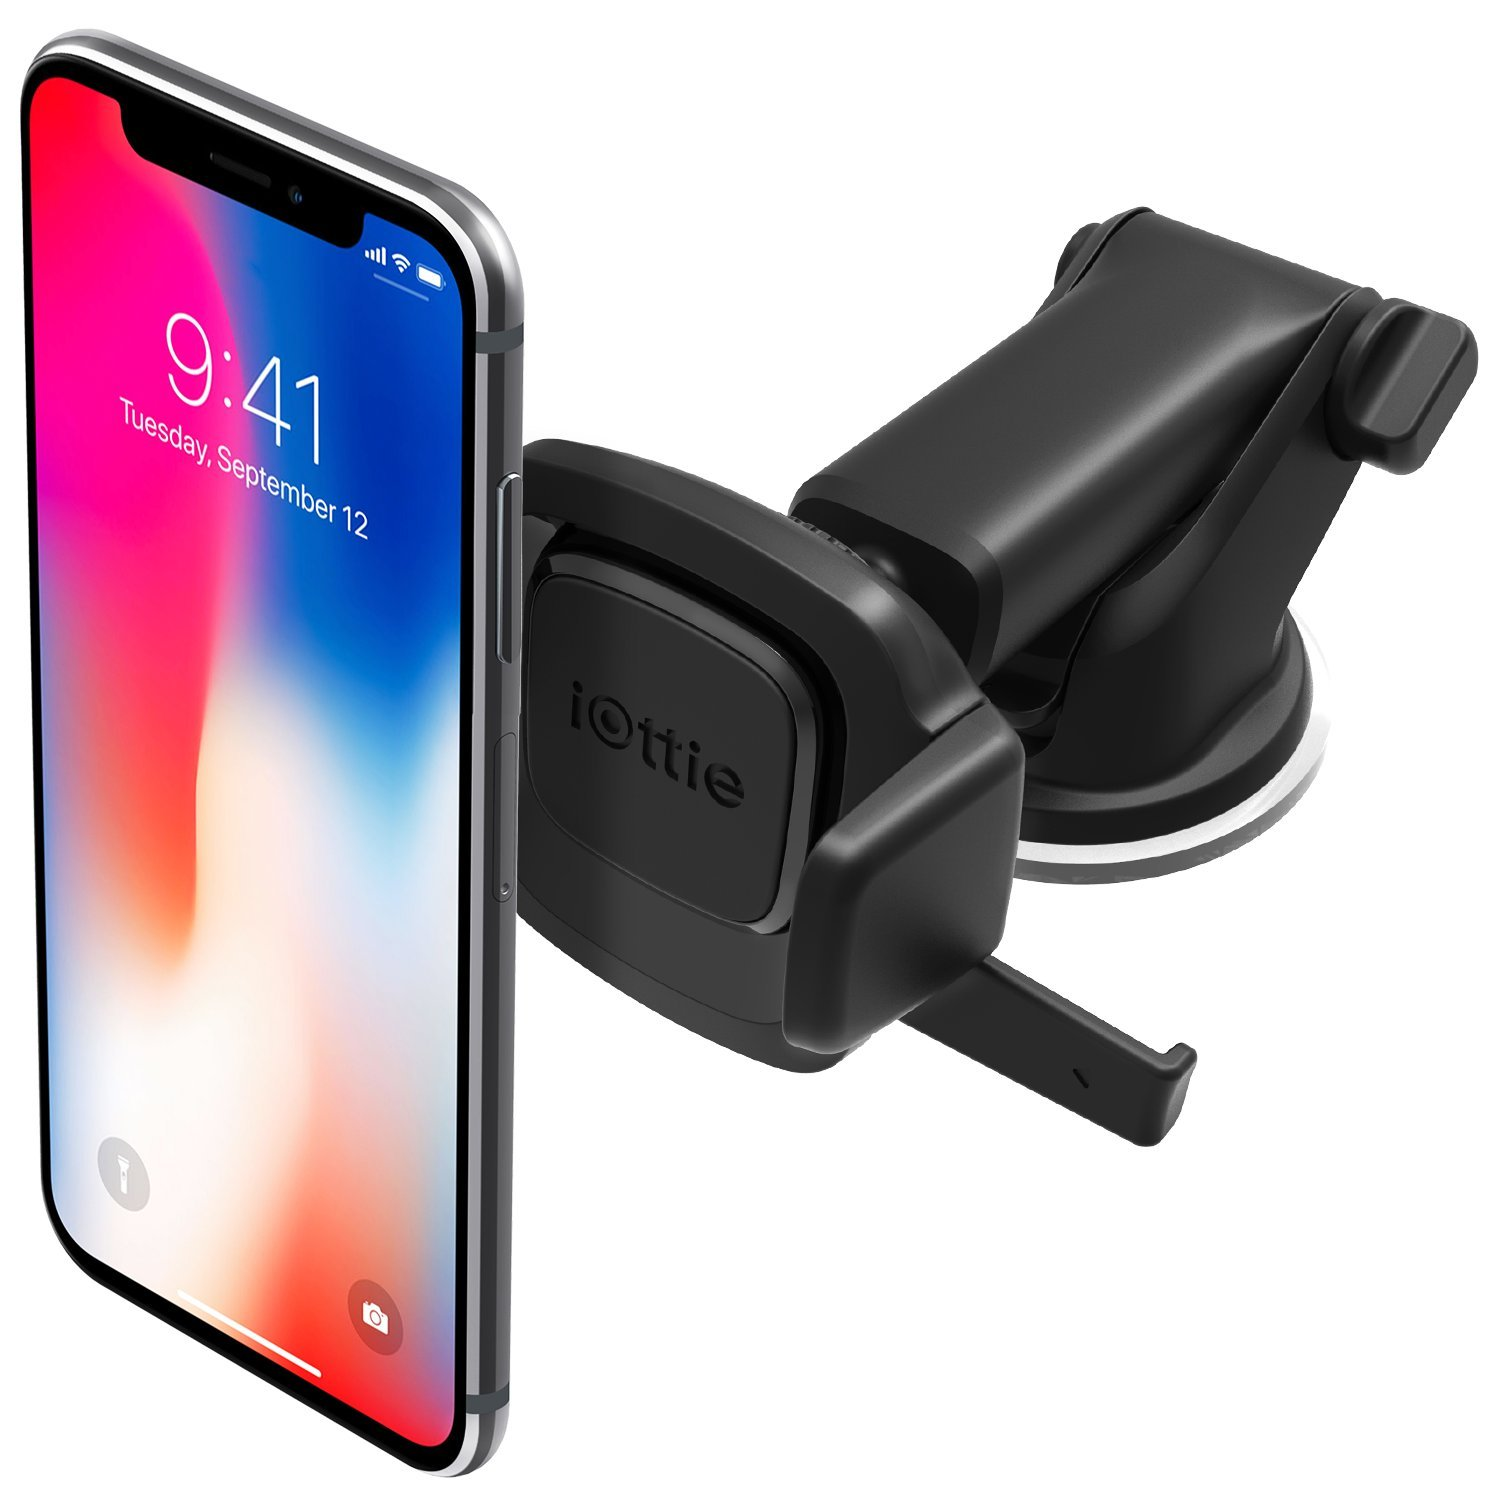 iOttie Easy One Touch Mini Windshield & Dashboard Car Mount Holder for iPhone XS Max R 8 8 Plus 7 Plus 6s Plus 6 SE Samsung Galaxy S9 S9 Plus S8 Plus S8 Edge S7 S6 Note 9